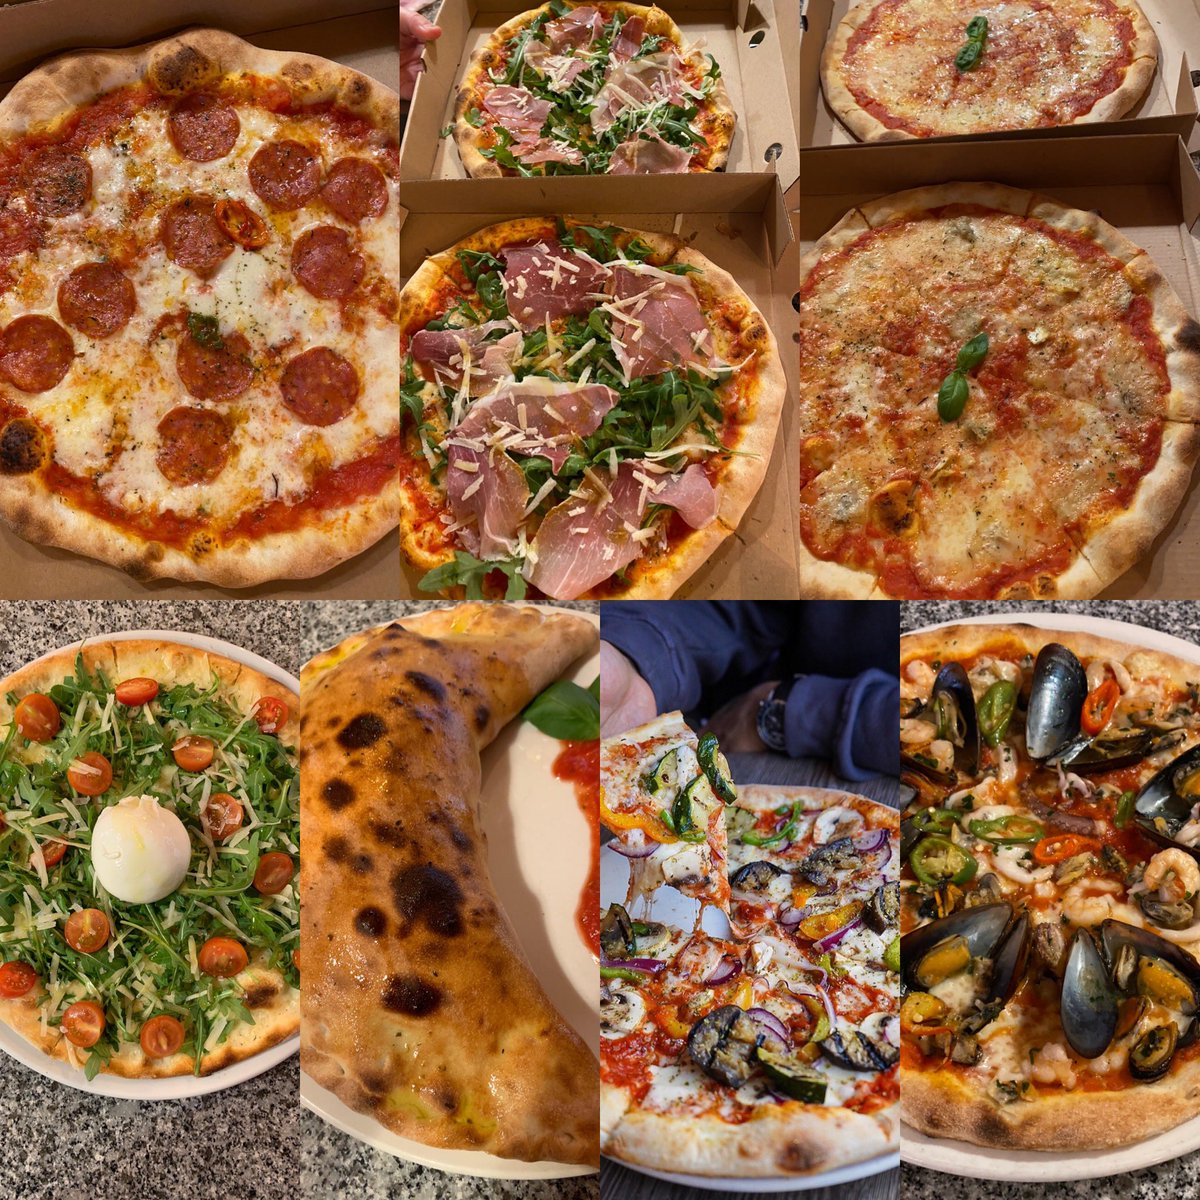 So great to see @BellaRomaItalia  back open. Take away only but just look how nice the pizzas are#supportsmallbusinesspic.twitter.com/j6DROip9xm